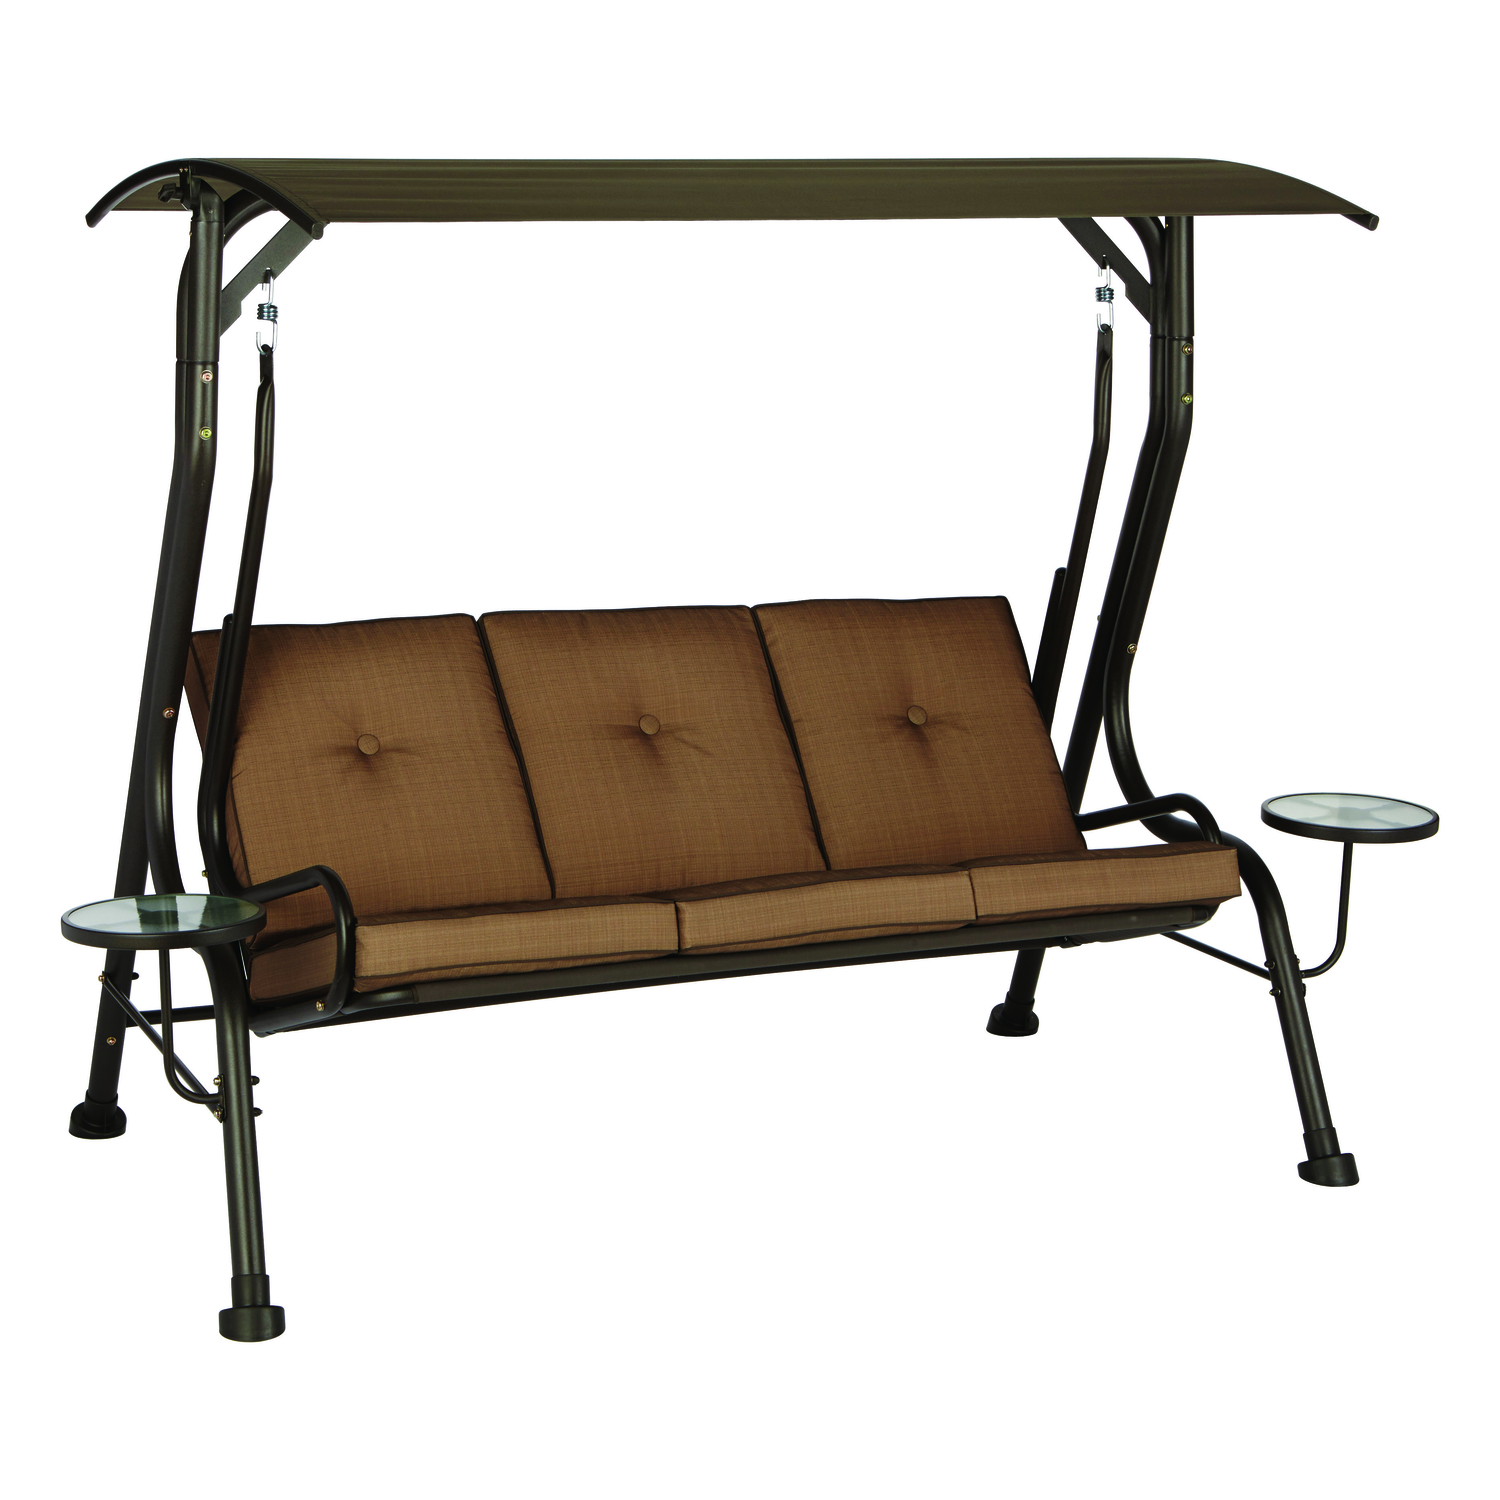 Incroyable Living Accents Steel Porch Swing 3 Person